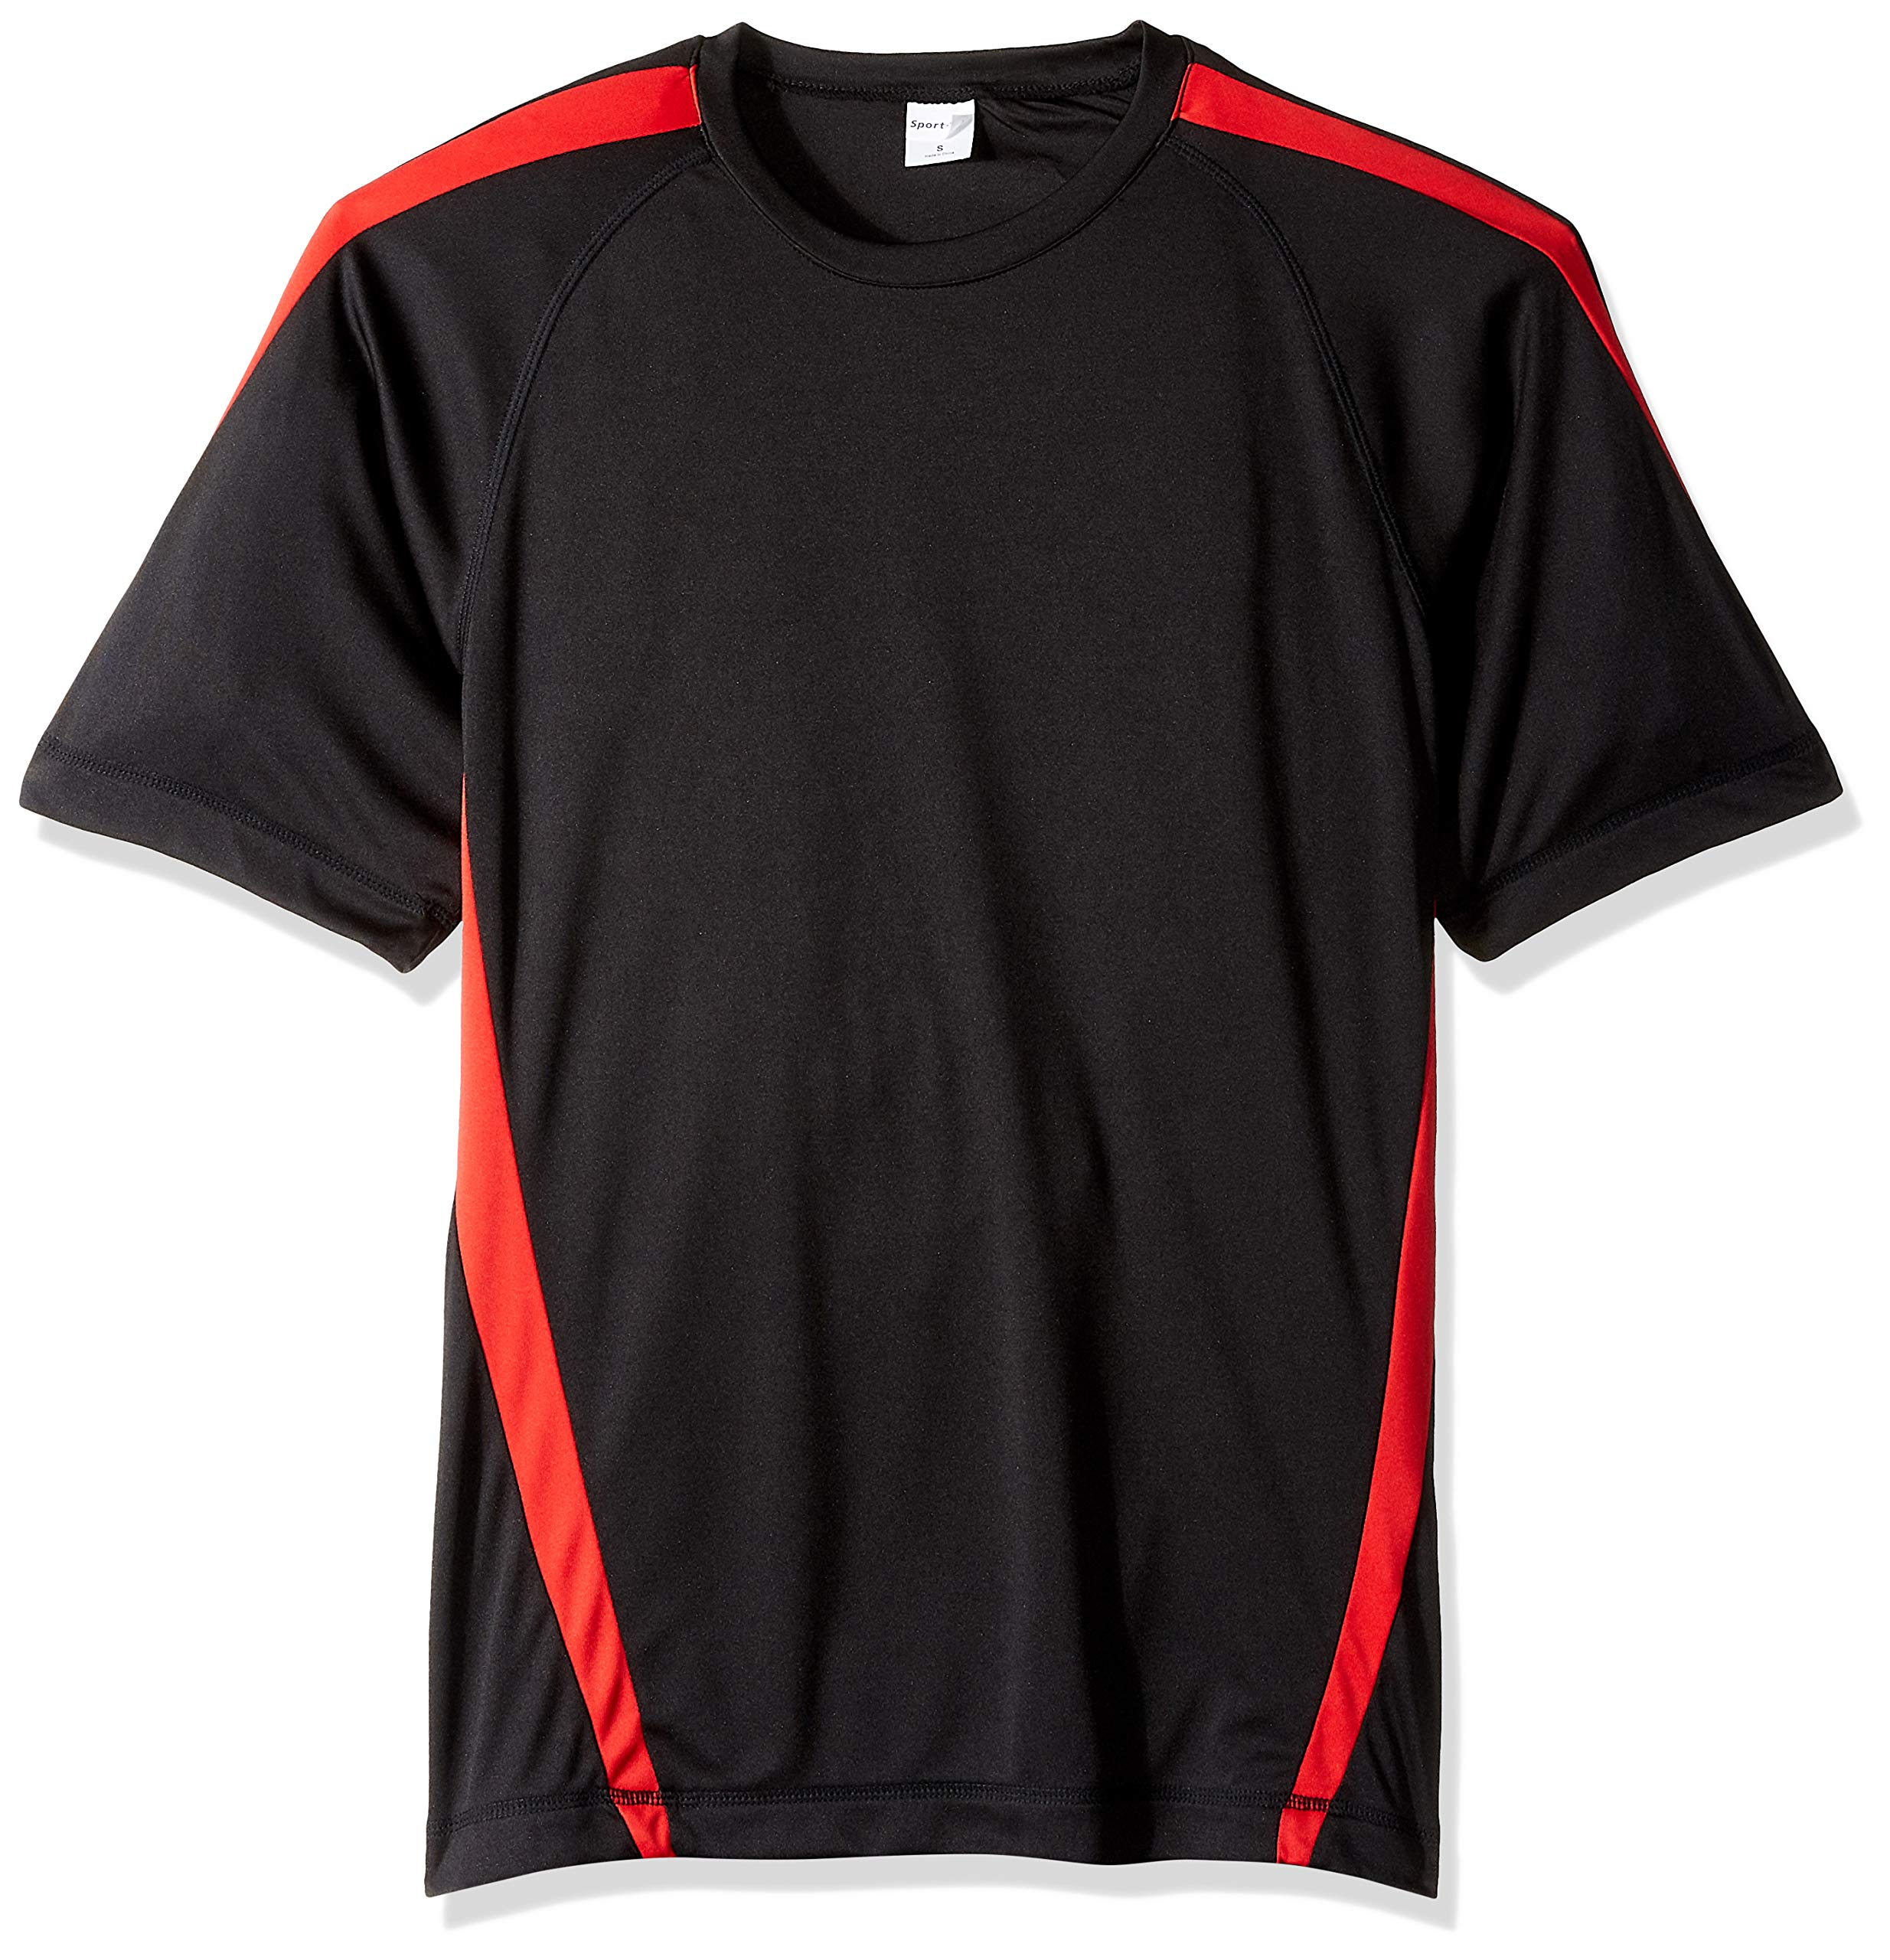 Sport Tek Men S Athletic Shirts Buy Online In Costa Rica At Costarica Desertcart Com Productid 189387449 When traveling to costa rica, your personal belongings list should include masks or face shields. desertcart